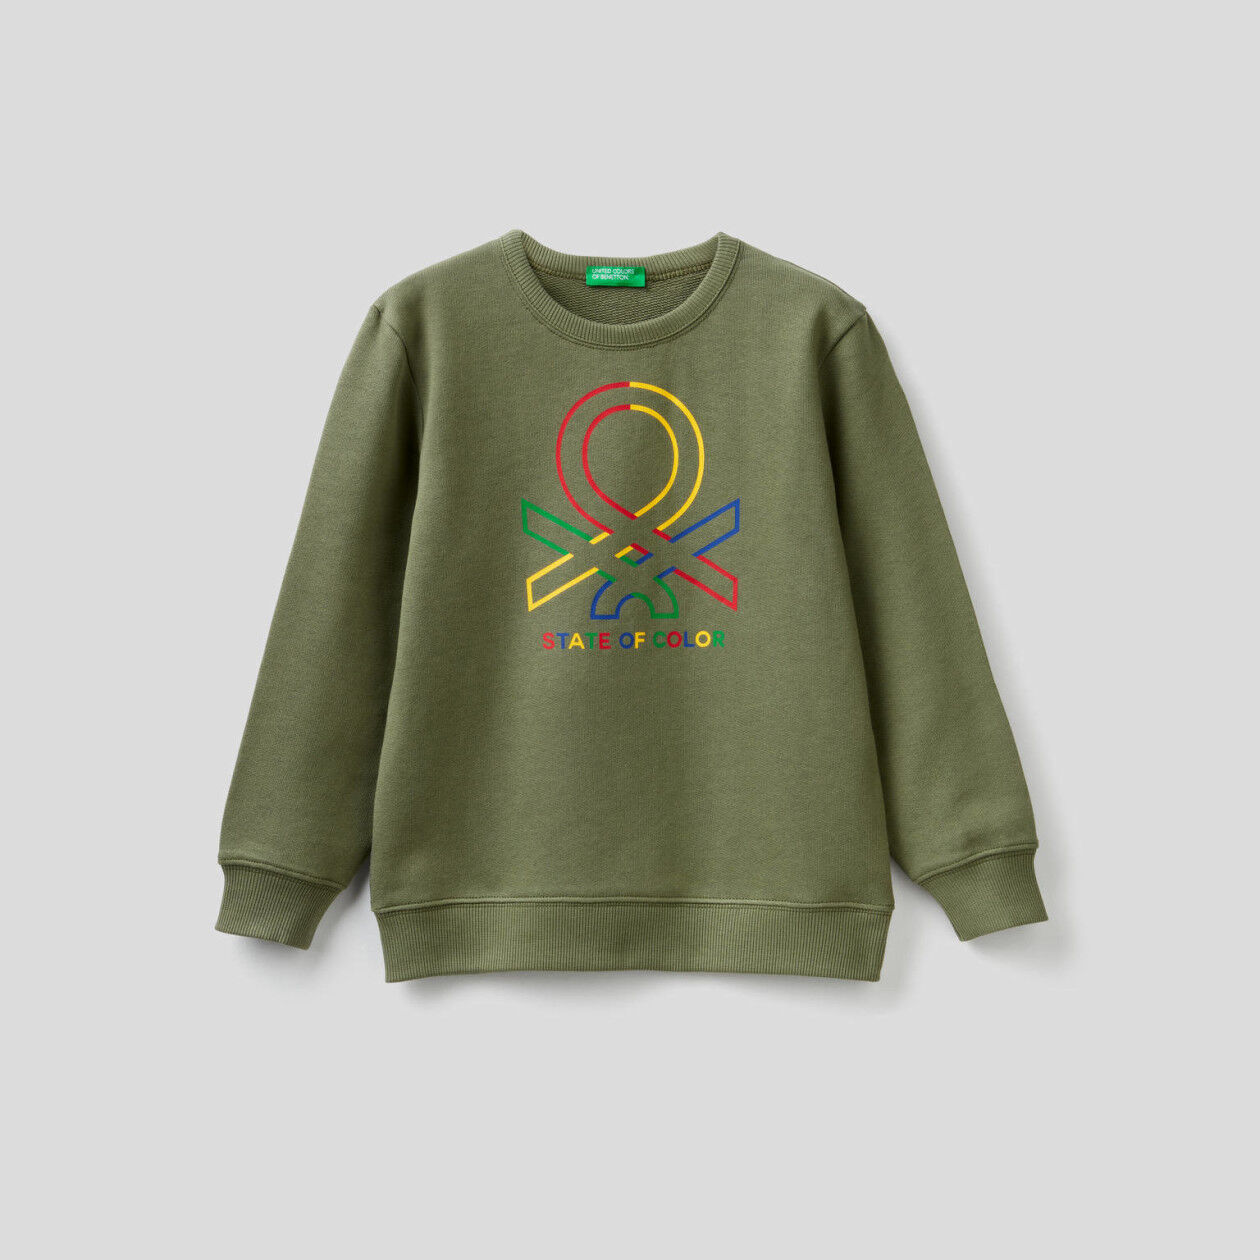 Pure cotton sweatshirt with logo